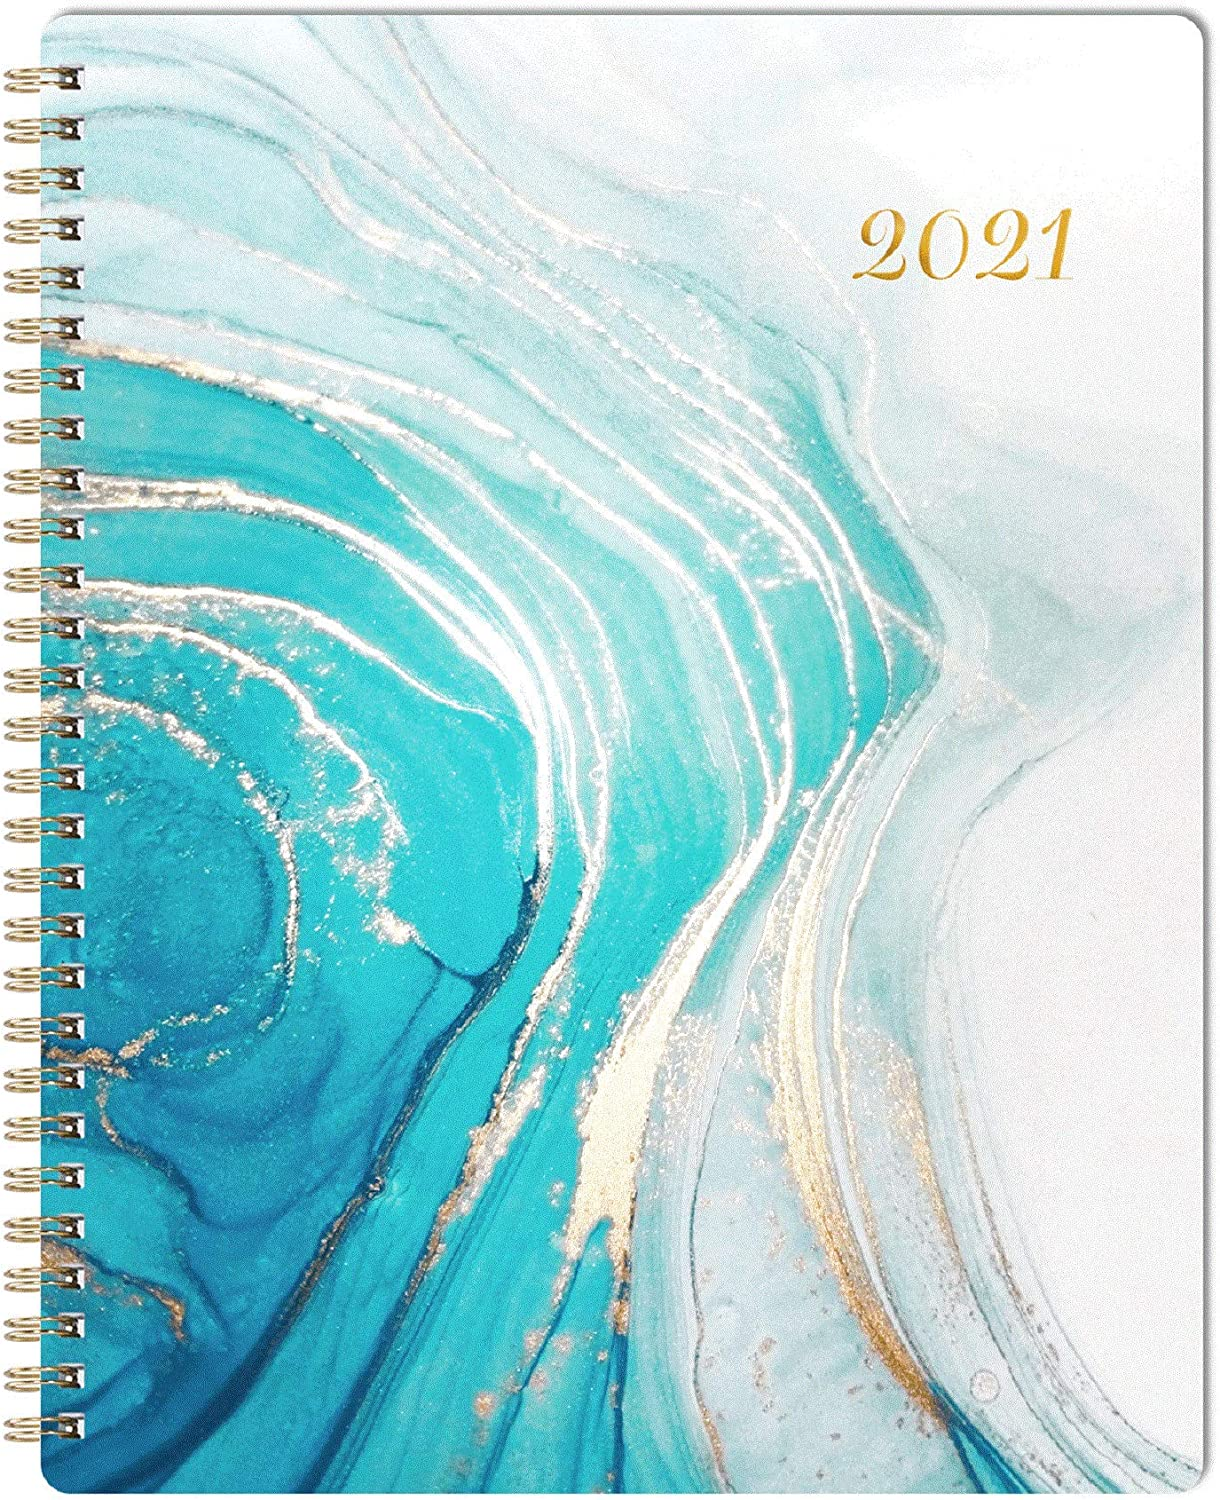 """Planner 2021 - Weekly Monthly Planner with Flexible Cover, 8"""" x 10"""", Jan 2021 - Dec 2021, Check Boxes as to-do List, Monthly Printed Tabs, Perfect for Home, Office Using"""